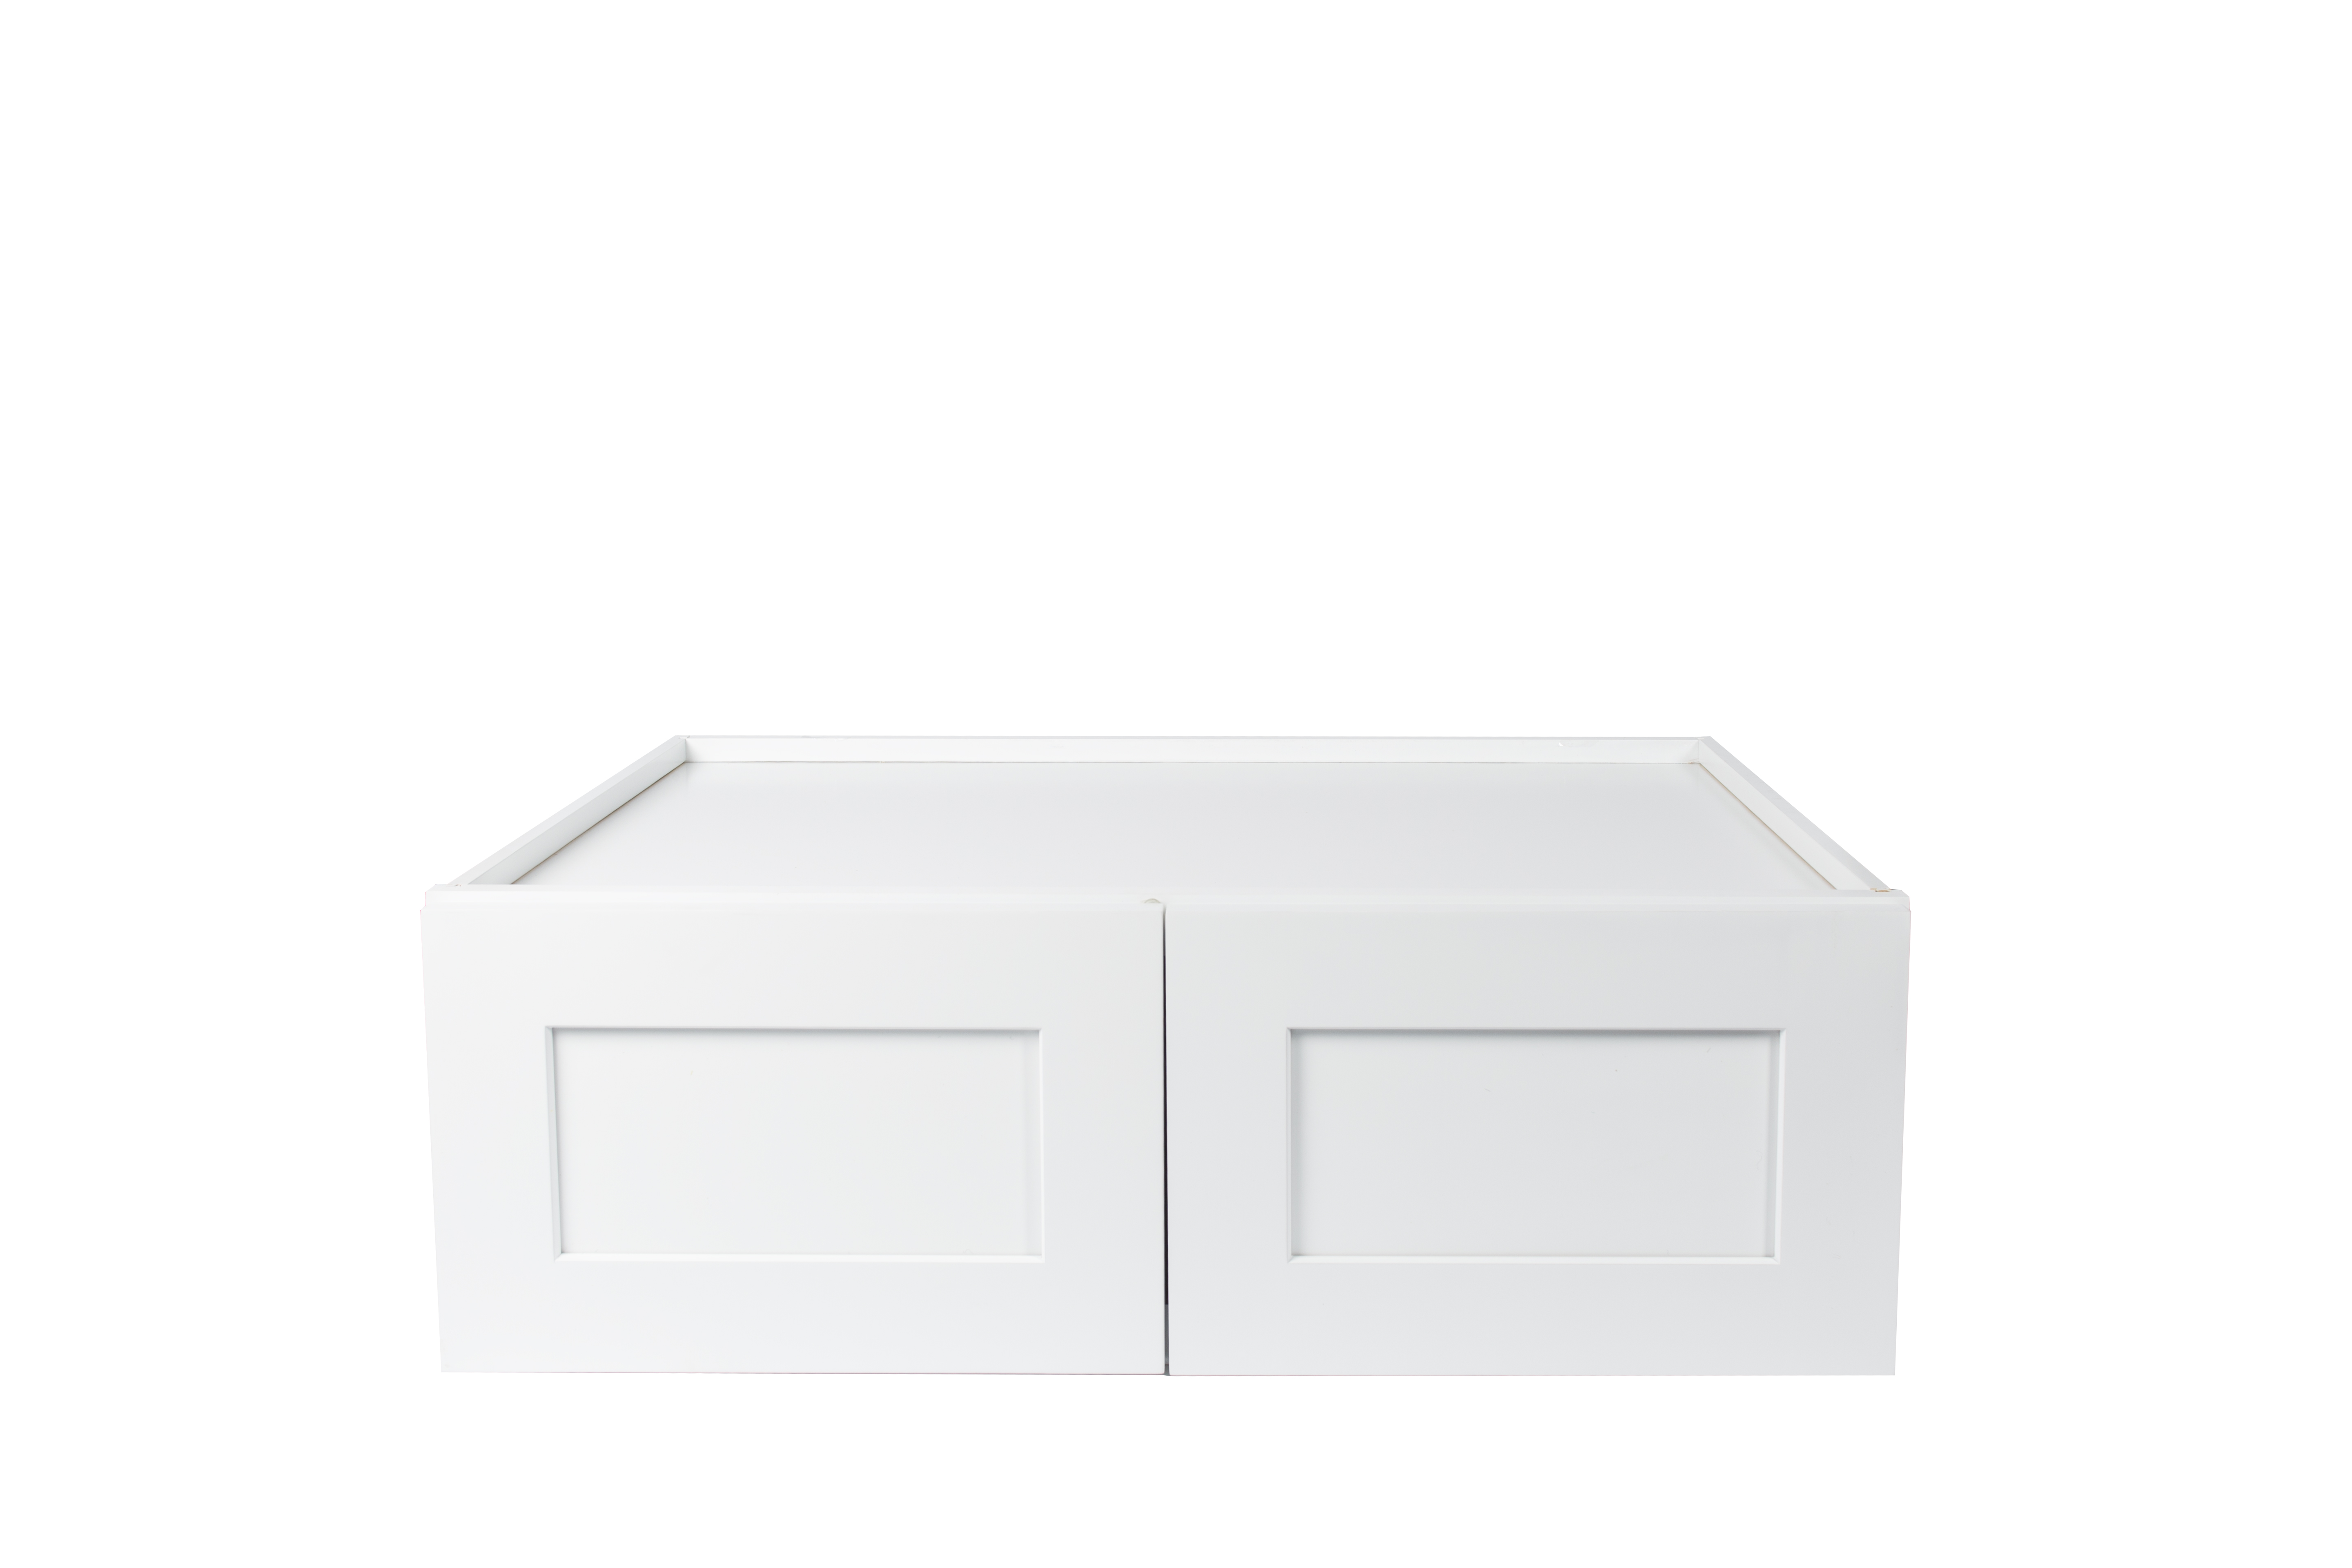 Ready to Assemble 30x12x24 in. Shaker High Double Door Wall Cabinet in White